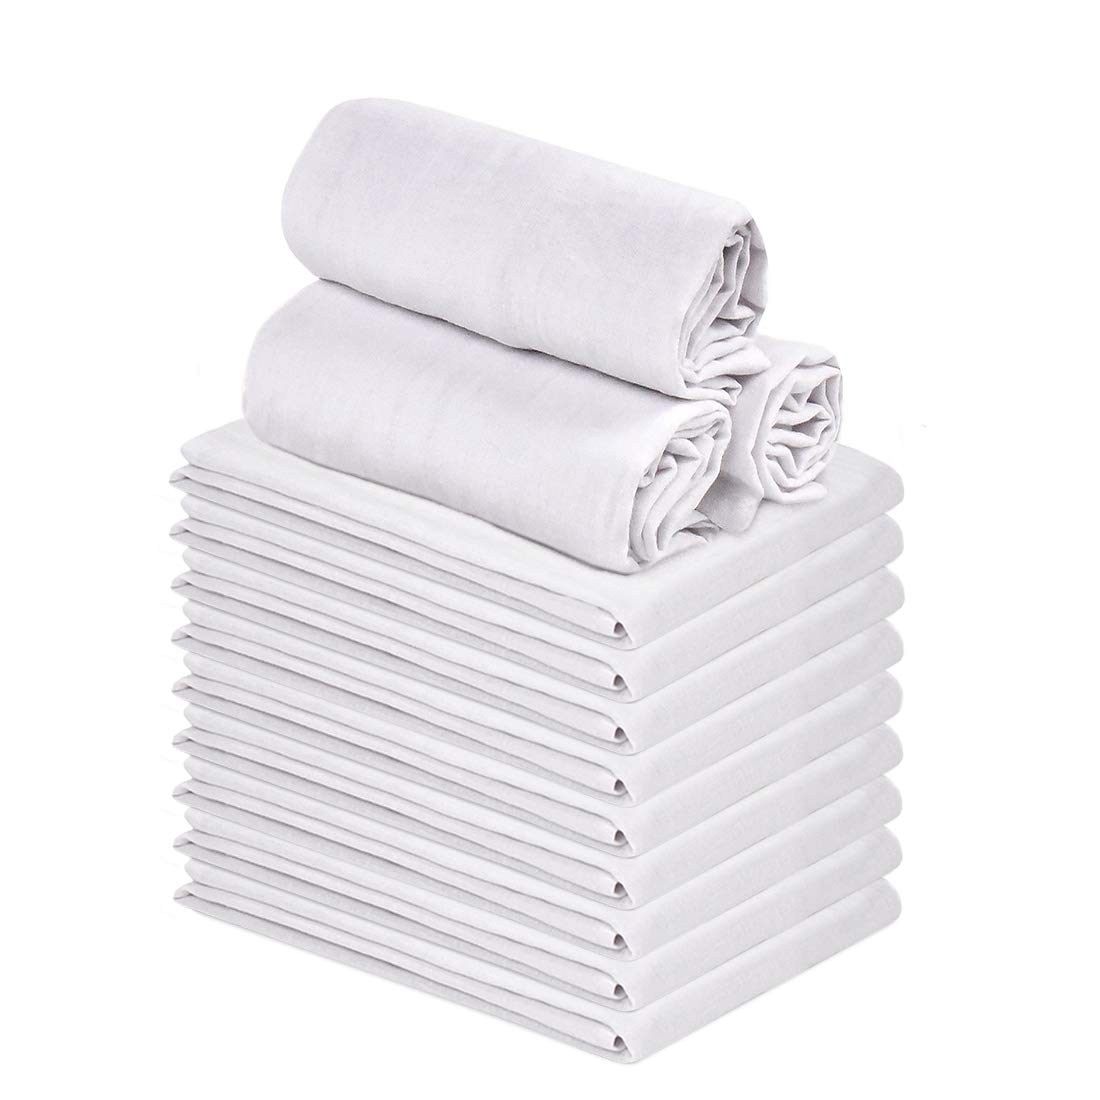 Talvania Classic White Flour Sack Towels - 12-Pack of 100% Ring Spun Cotton Home Kitchen Dish Towel. Soft Absorbent Dish Towels - Lint Free Measures 28'' X 28'' Tea Towel by Talvania